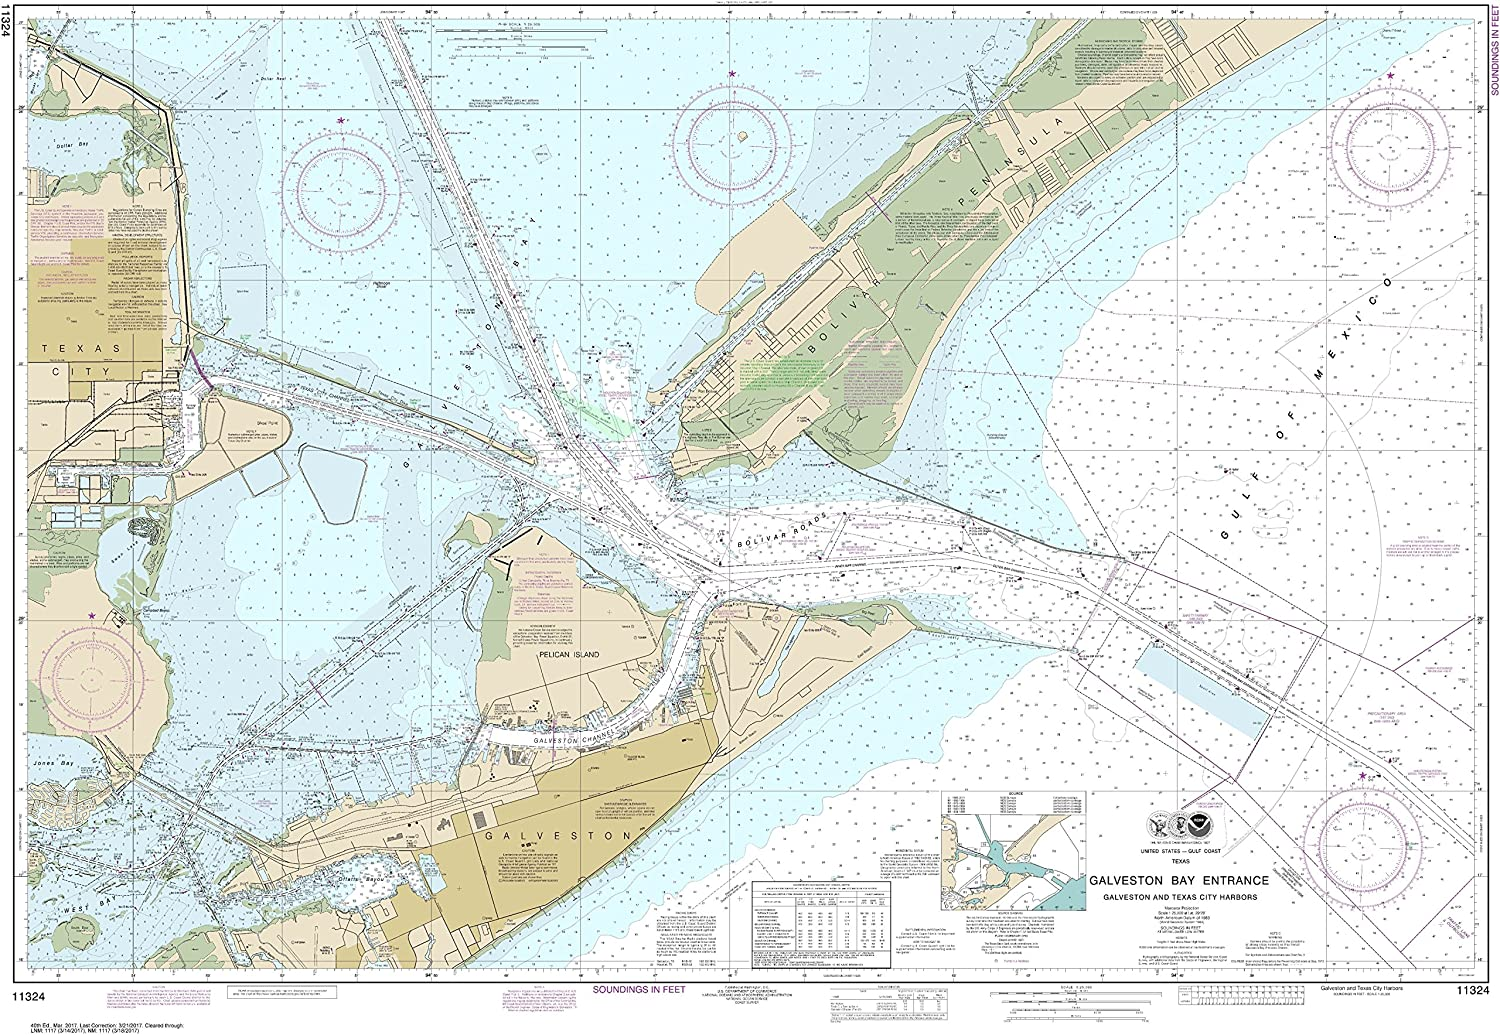 Noaa Chart 11324 Galveston Bay Entrance Galveston and Texas City Harbors  35.55  X 51.21  Paper Chart